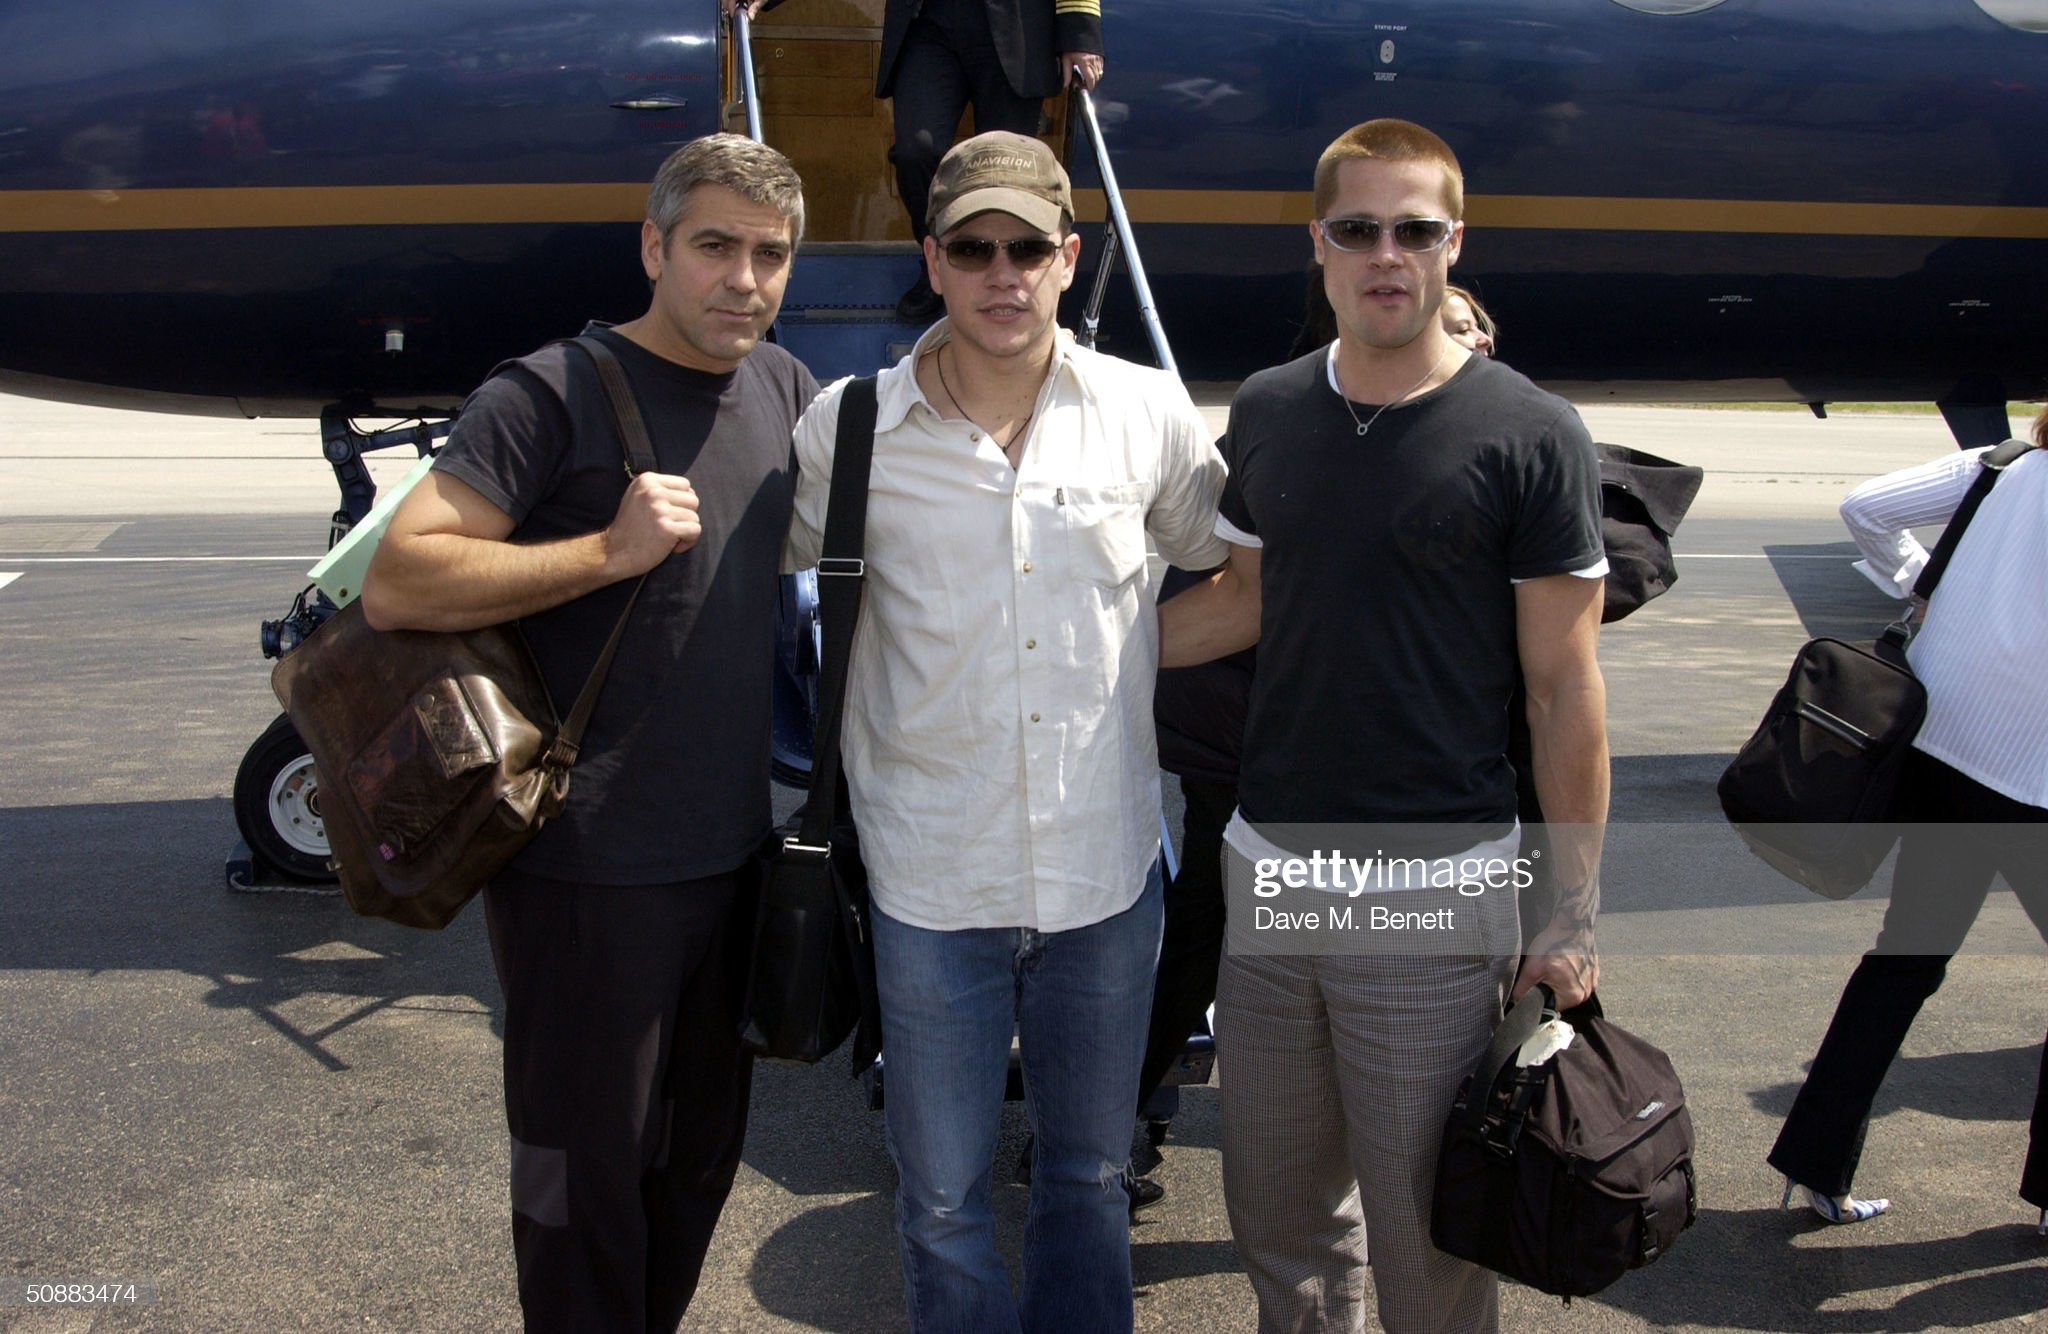 ¿Cuánto mide George Clooney? - Altura - Real height Actors-george-clooney-matt-damon-and-brad-pitt-arrive-by-gulf-stream-picture-id50883474?s=2048x2048